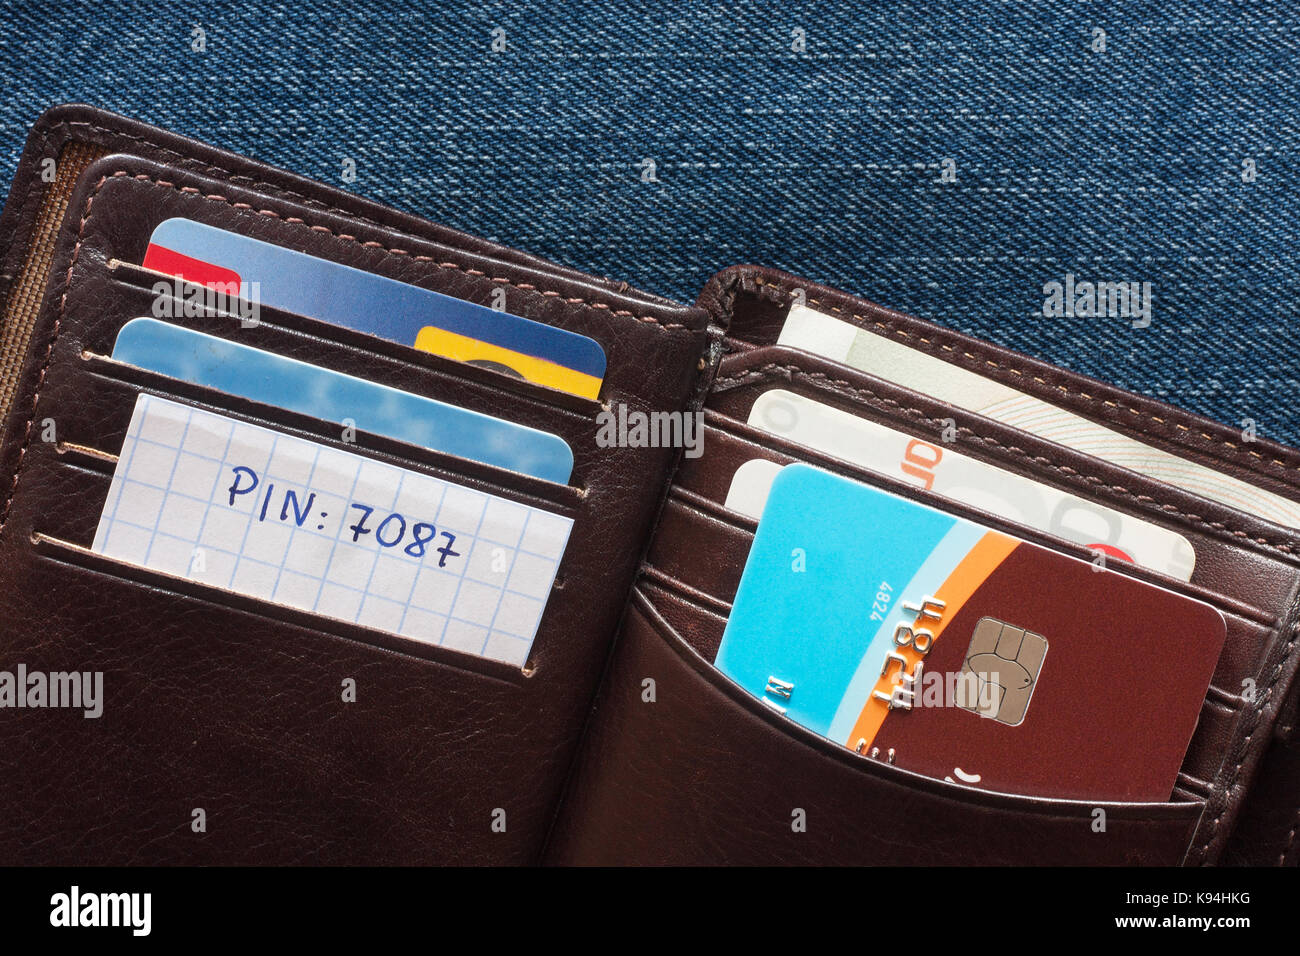 Credit card with pin number in wallet on blue background - Stock Image